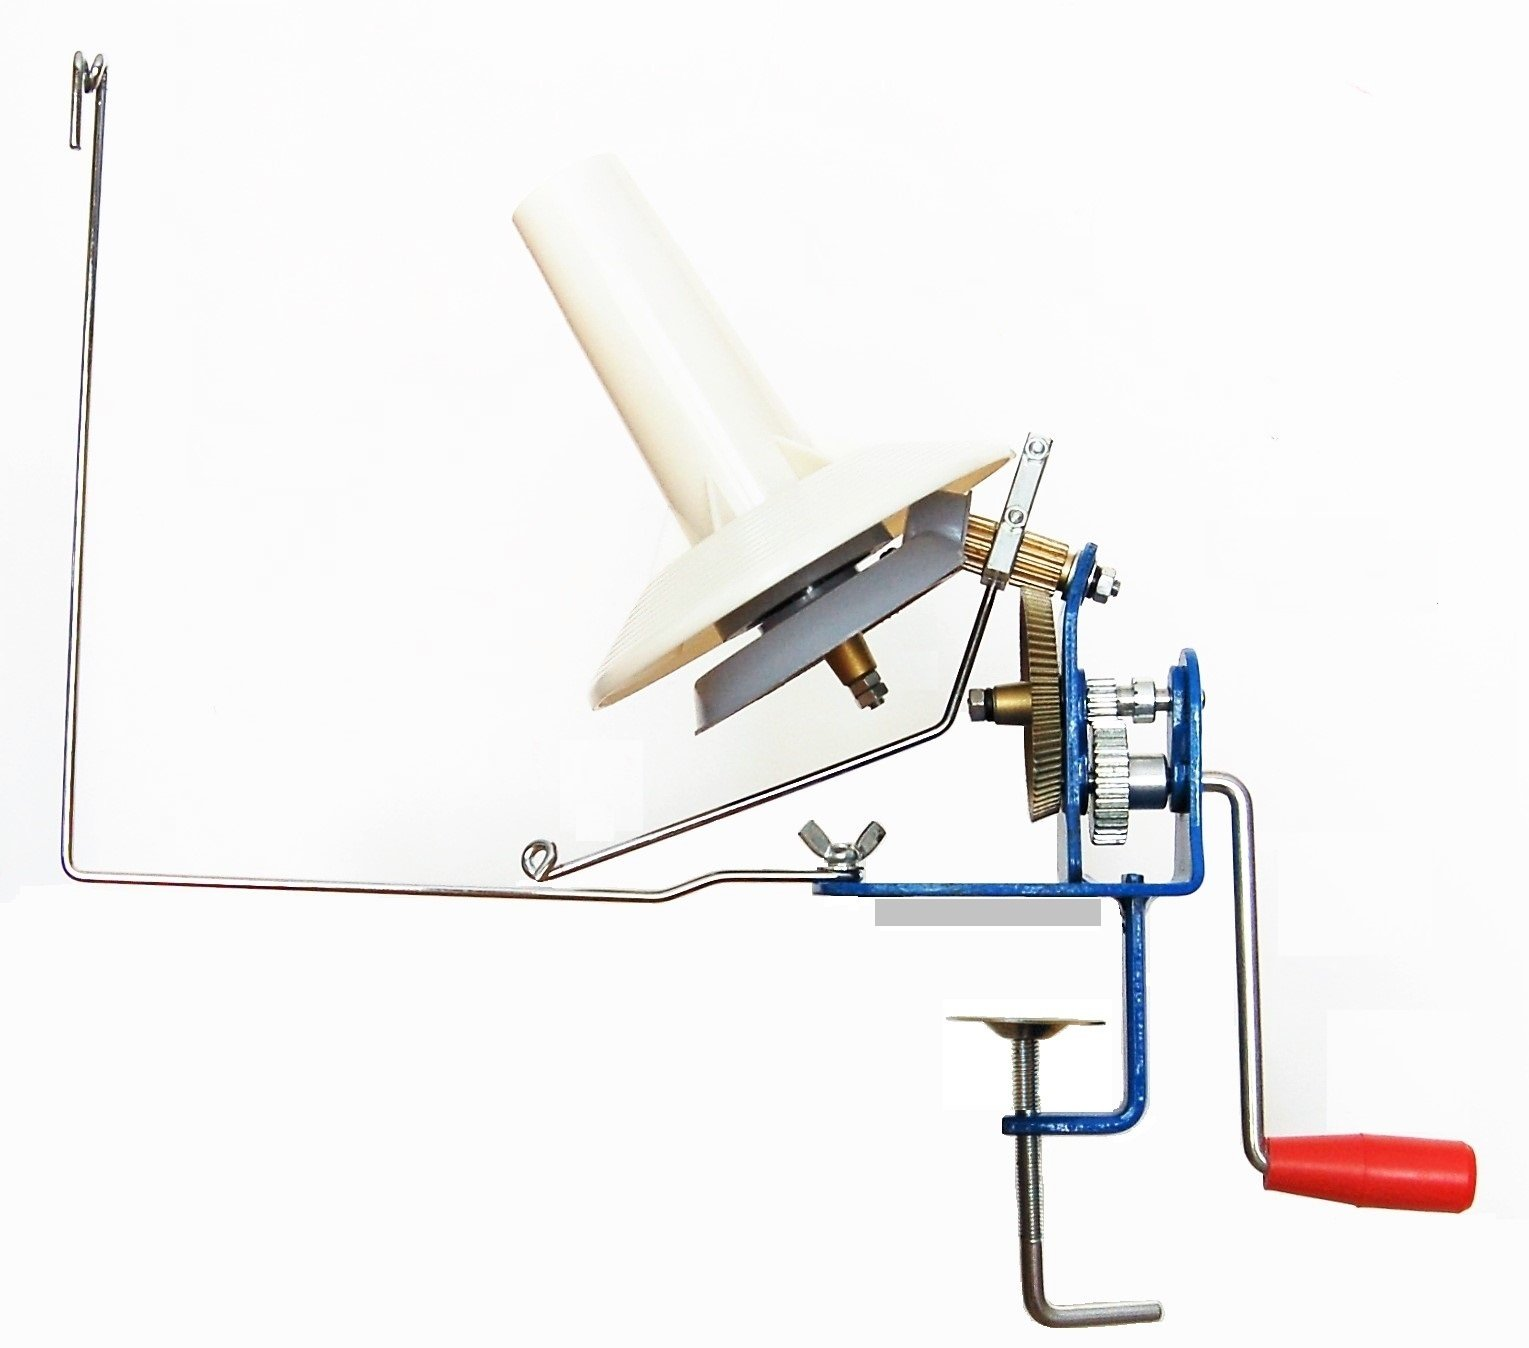 U-nitt Metal Jumbo large yarn/wool/string/fiber ball winder hand operated (high speed) capacity 10 oz MH701